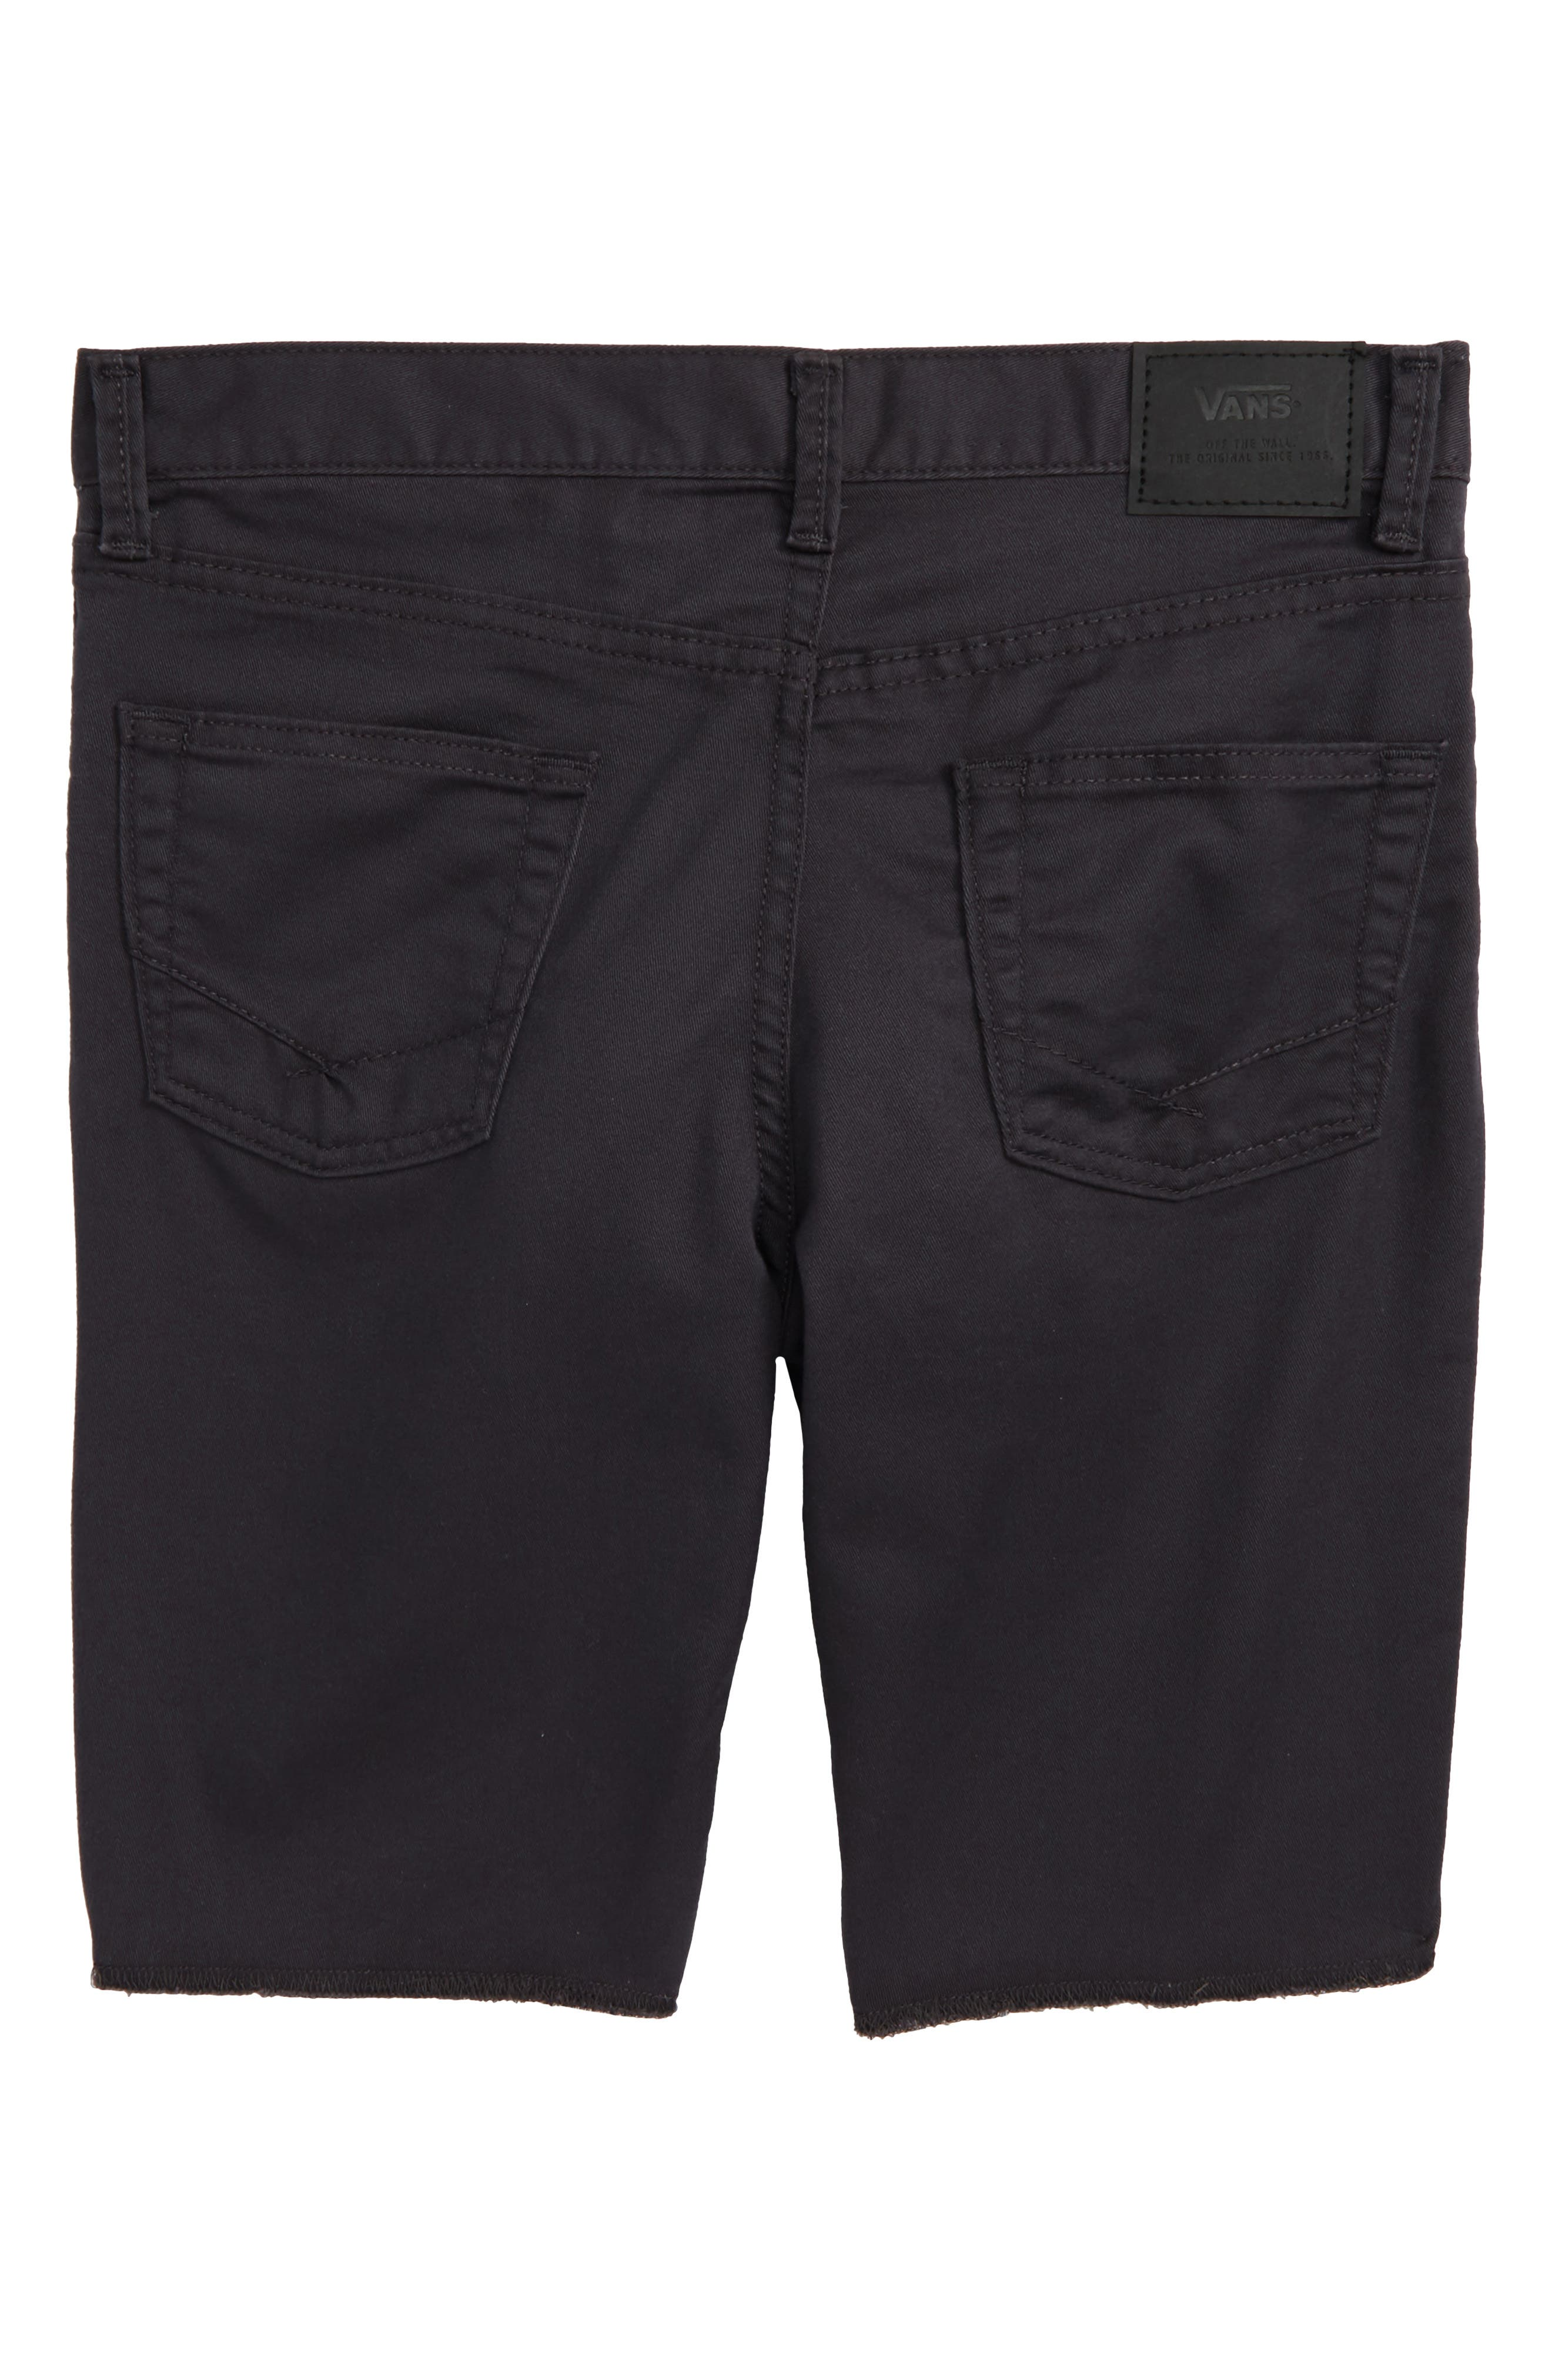 Covina II - Anthony Van Engelen Twill Shorts,                             Alternate thumbnail 4, color,